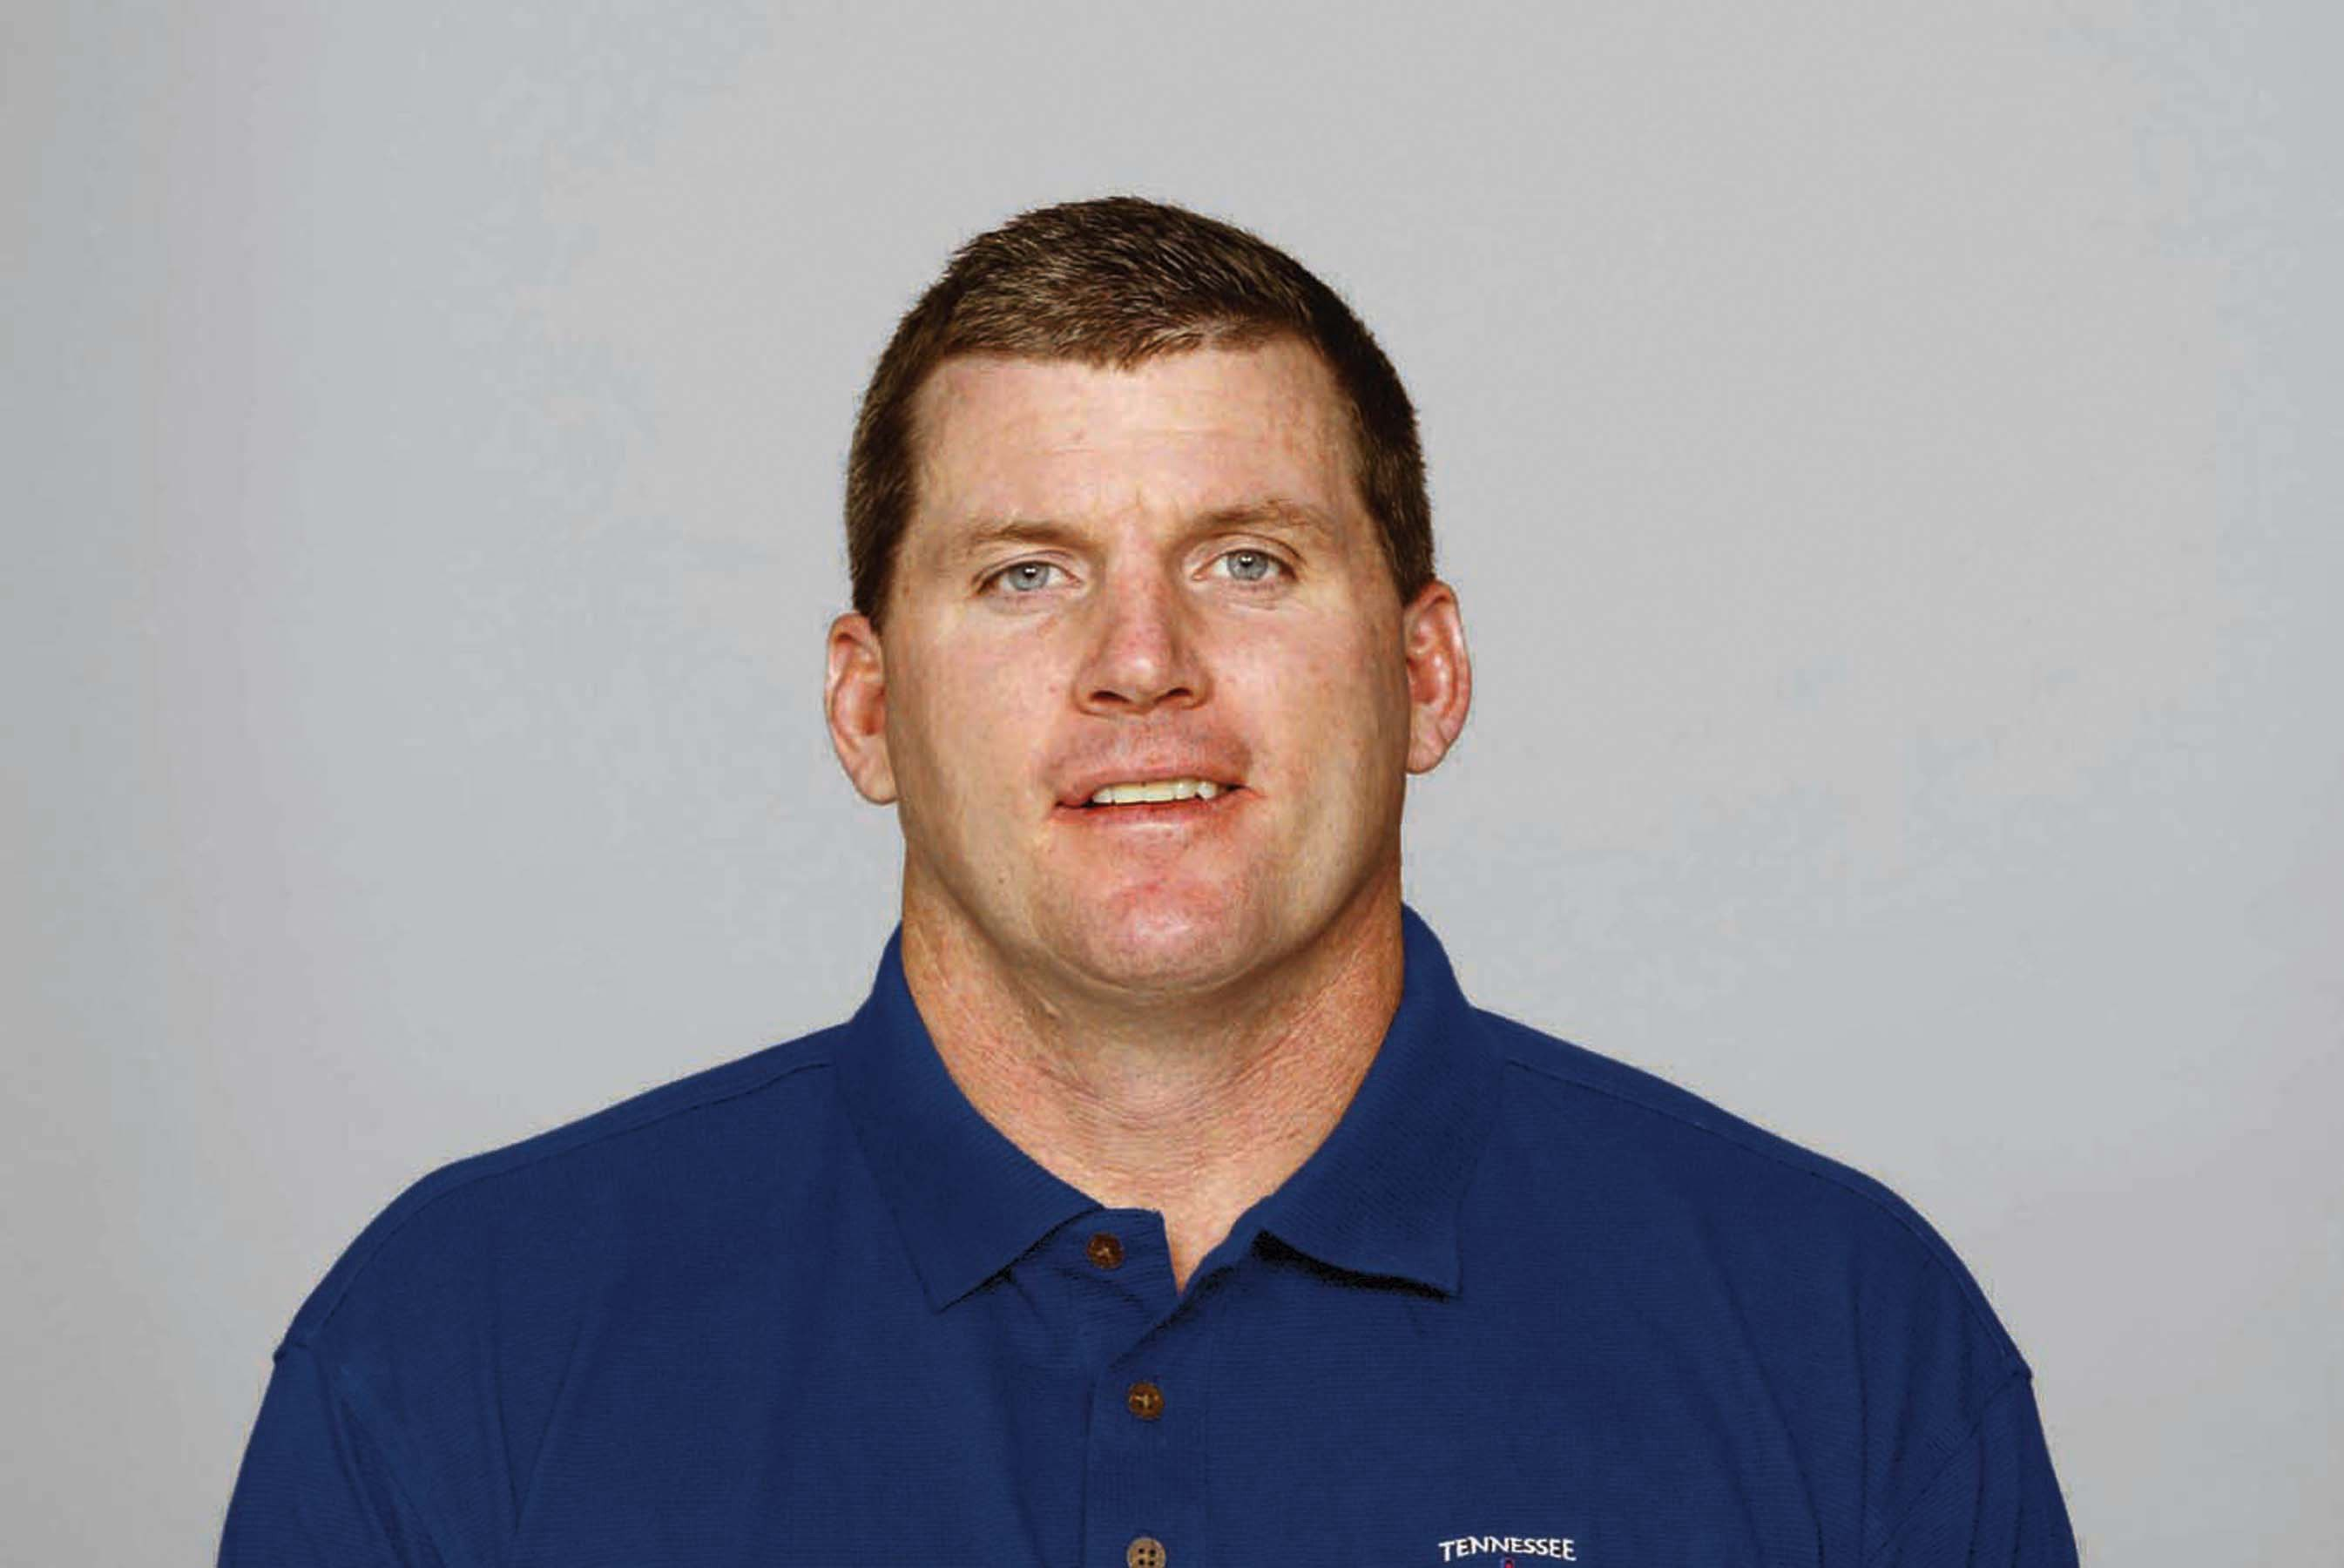 NASHVILLE, TN - 2009:  Mike Munchak of the Tennessee Titans poses for his 2009 NFL headshot at photo day in Nashville, Tennessee.  (Photo by NFL Photos)